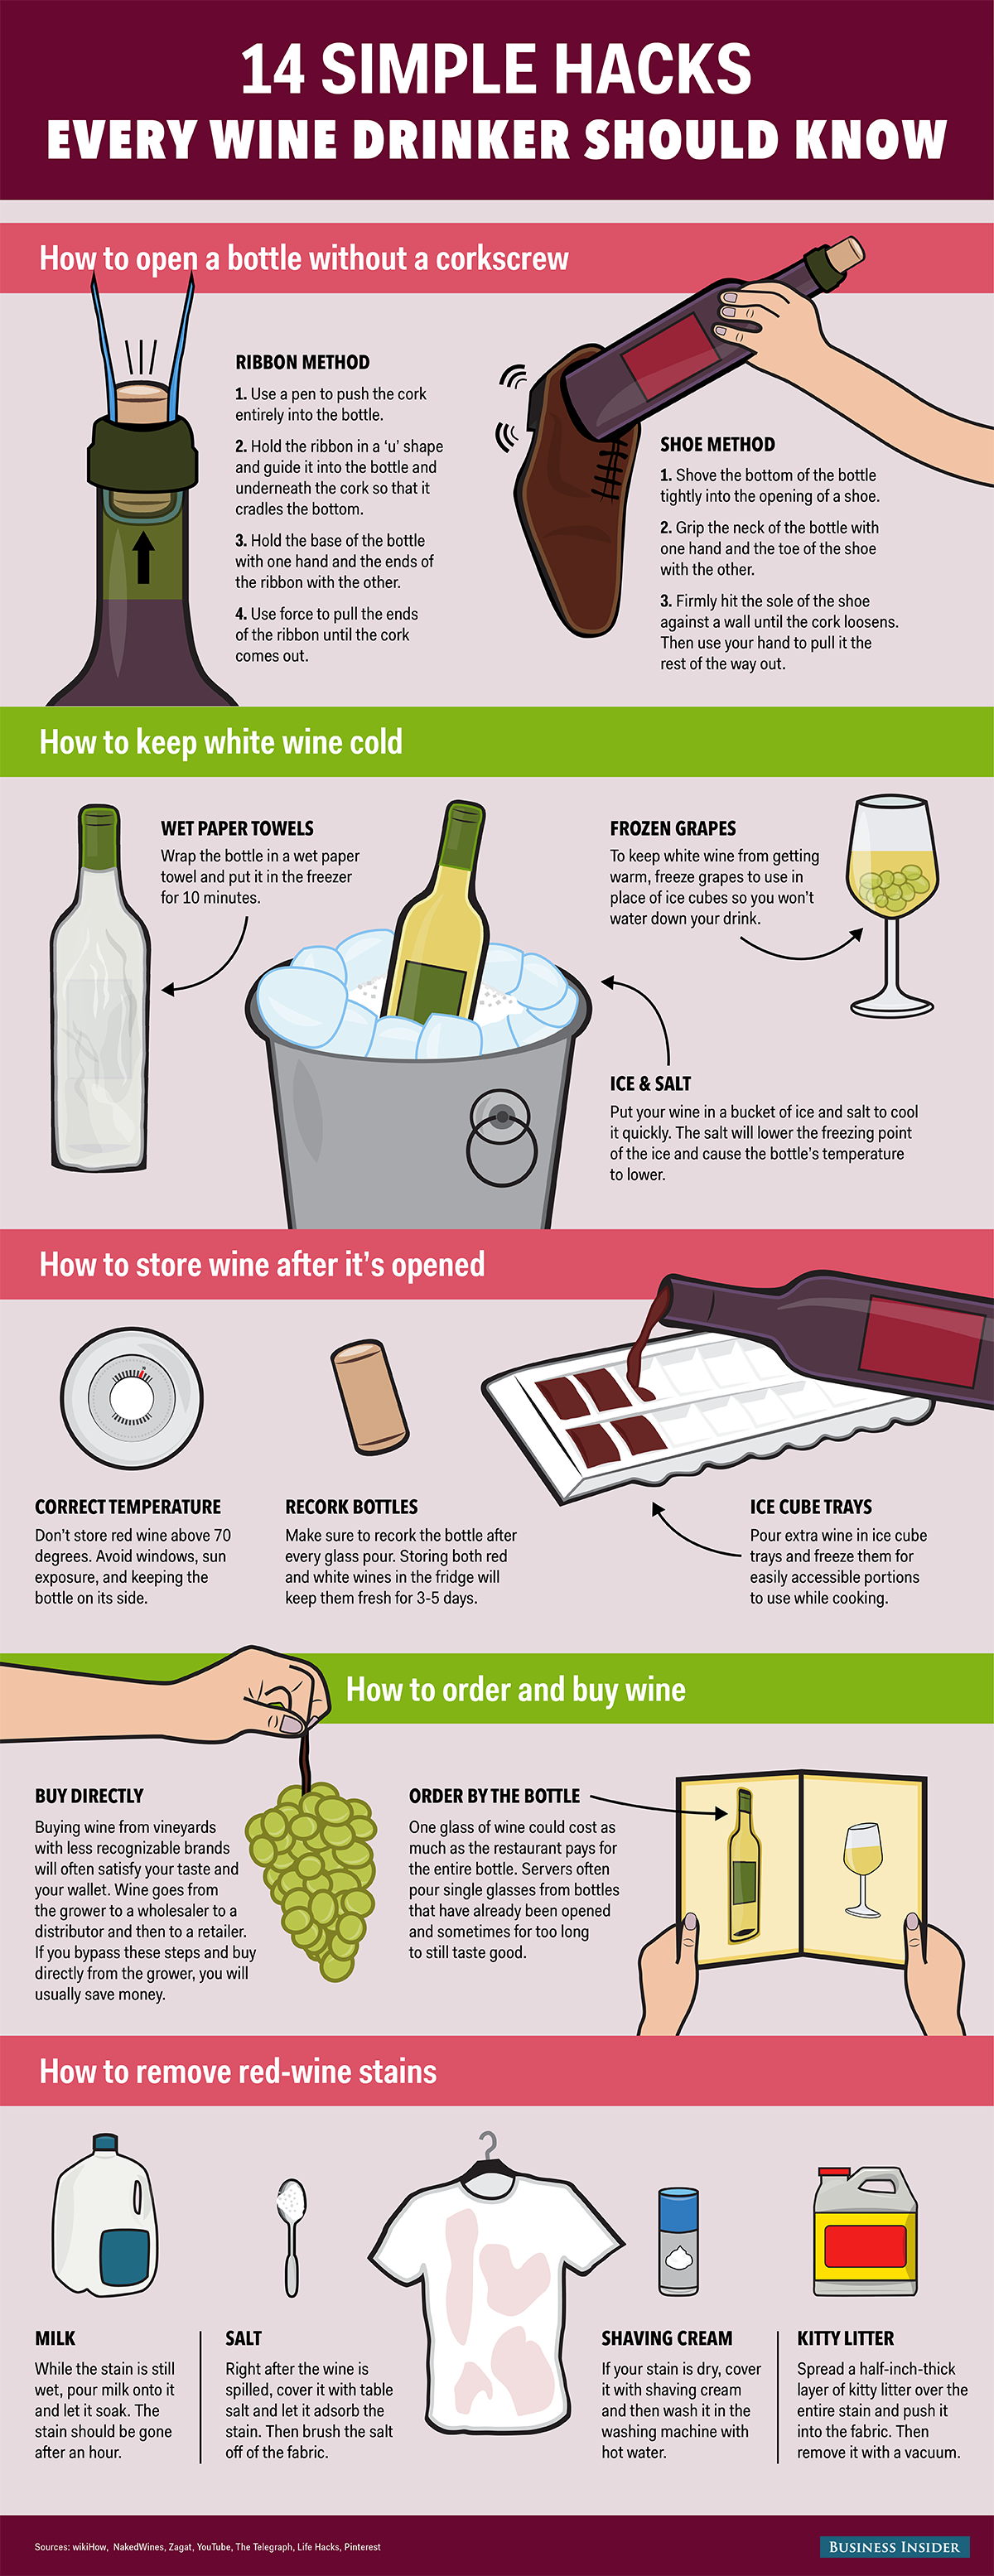 bi_graphics_winehacks